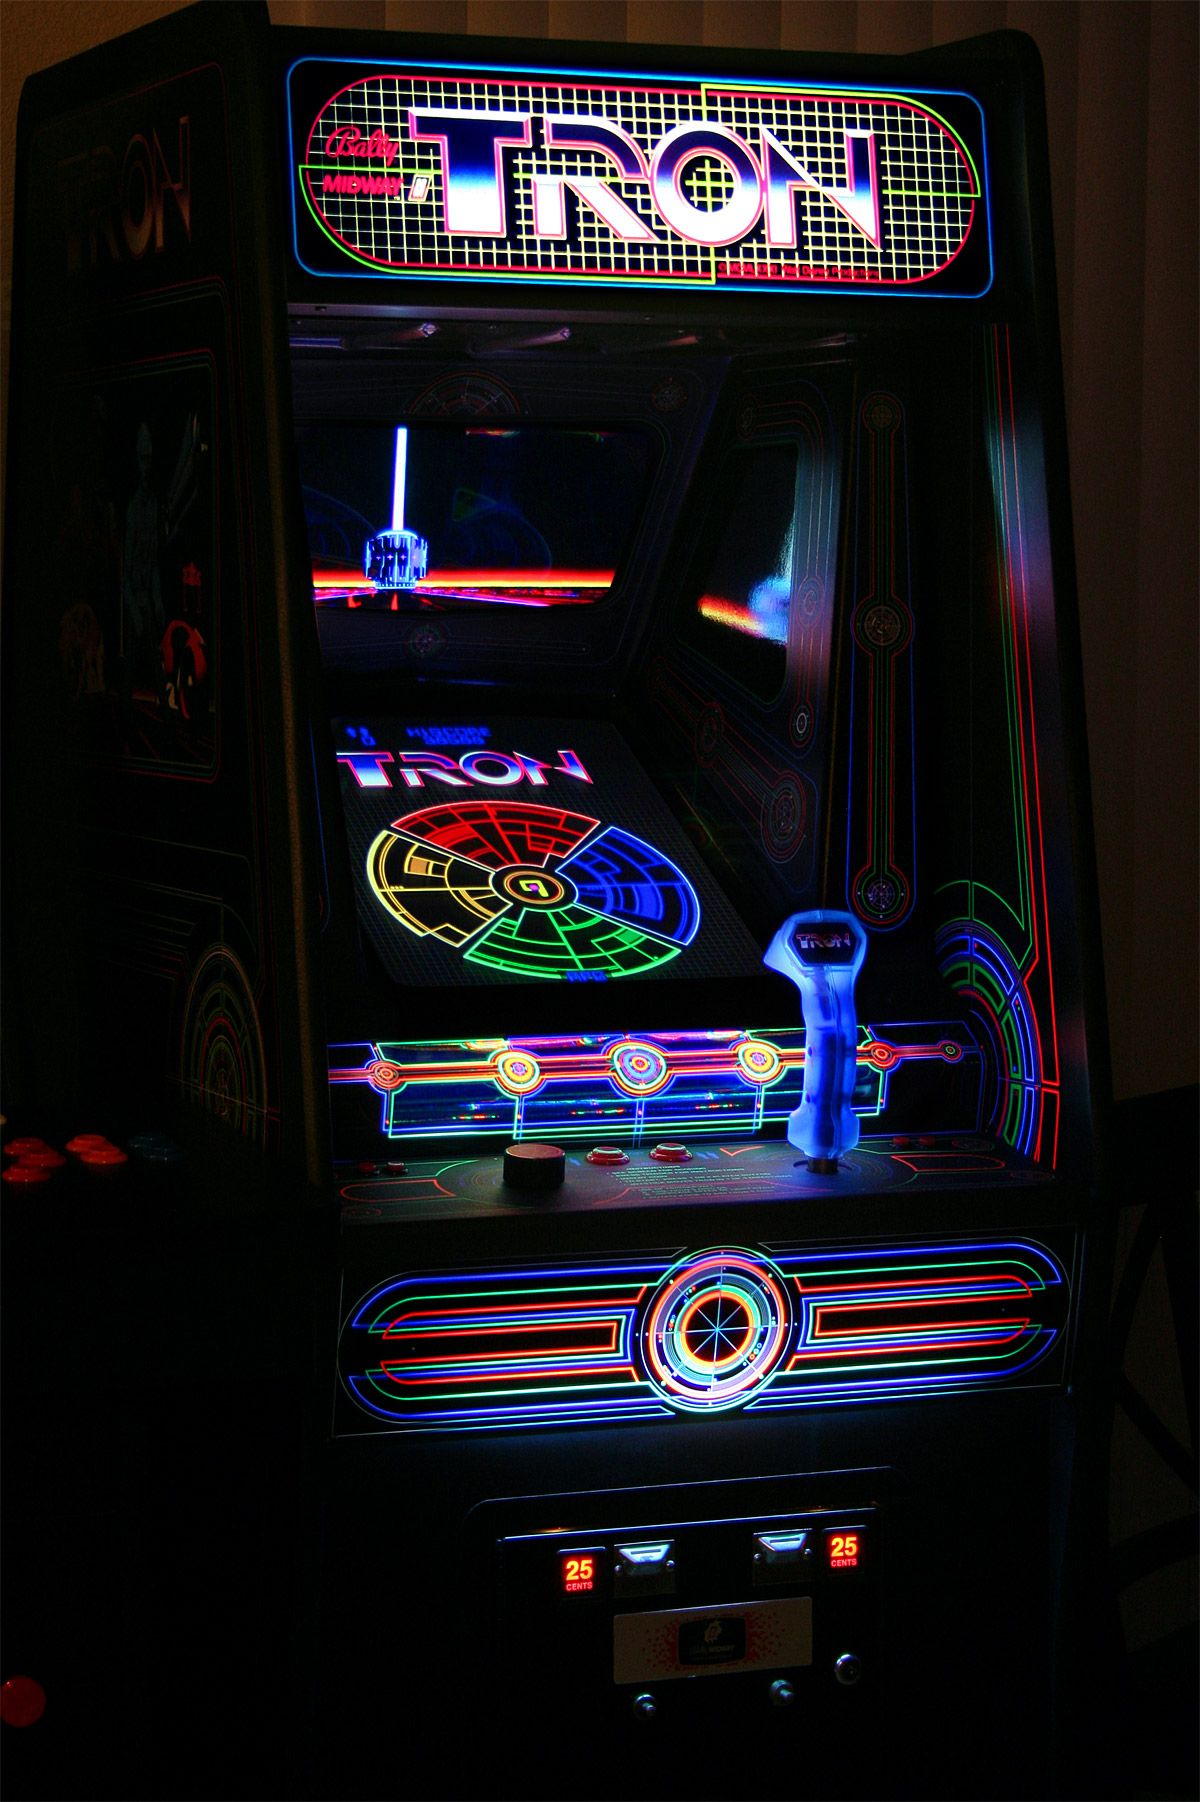 Madddscience The Famous Tron Arcade Game In The 1980 S